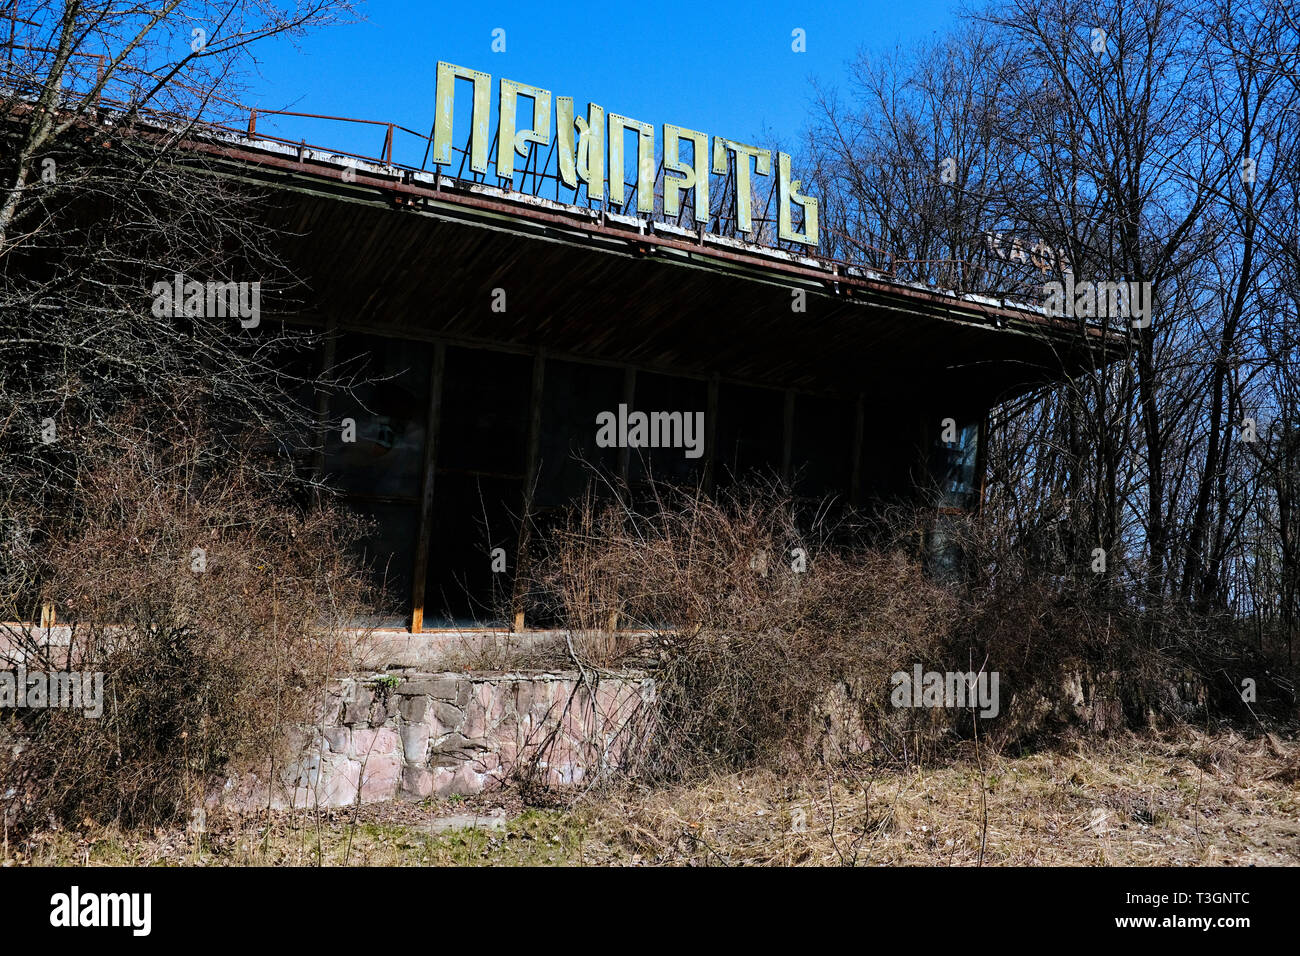 Abandoned building in the ghost town of Pripyat inside the exclusion zone of Chernobyl, Ukraine, April 2019 - Stock Image